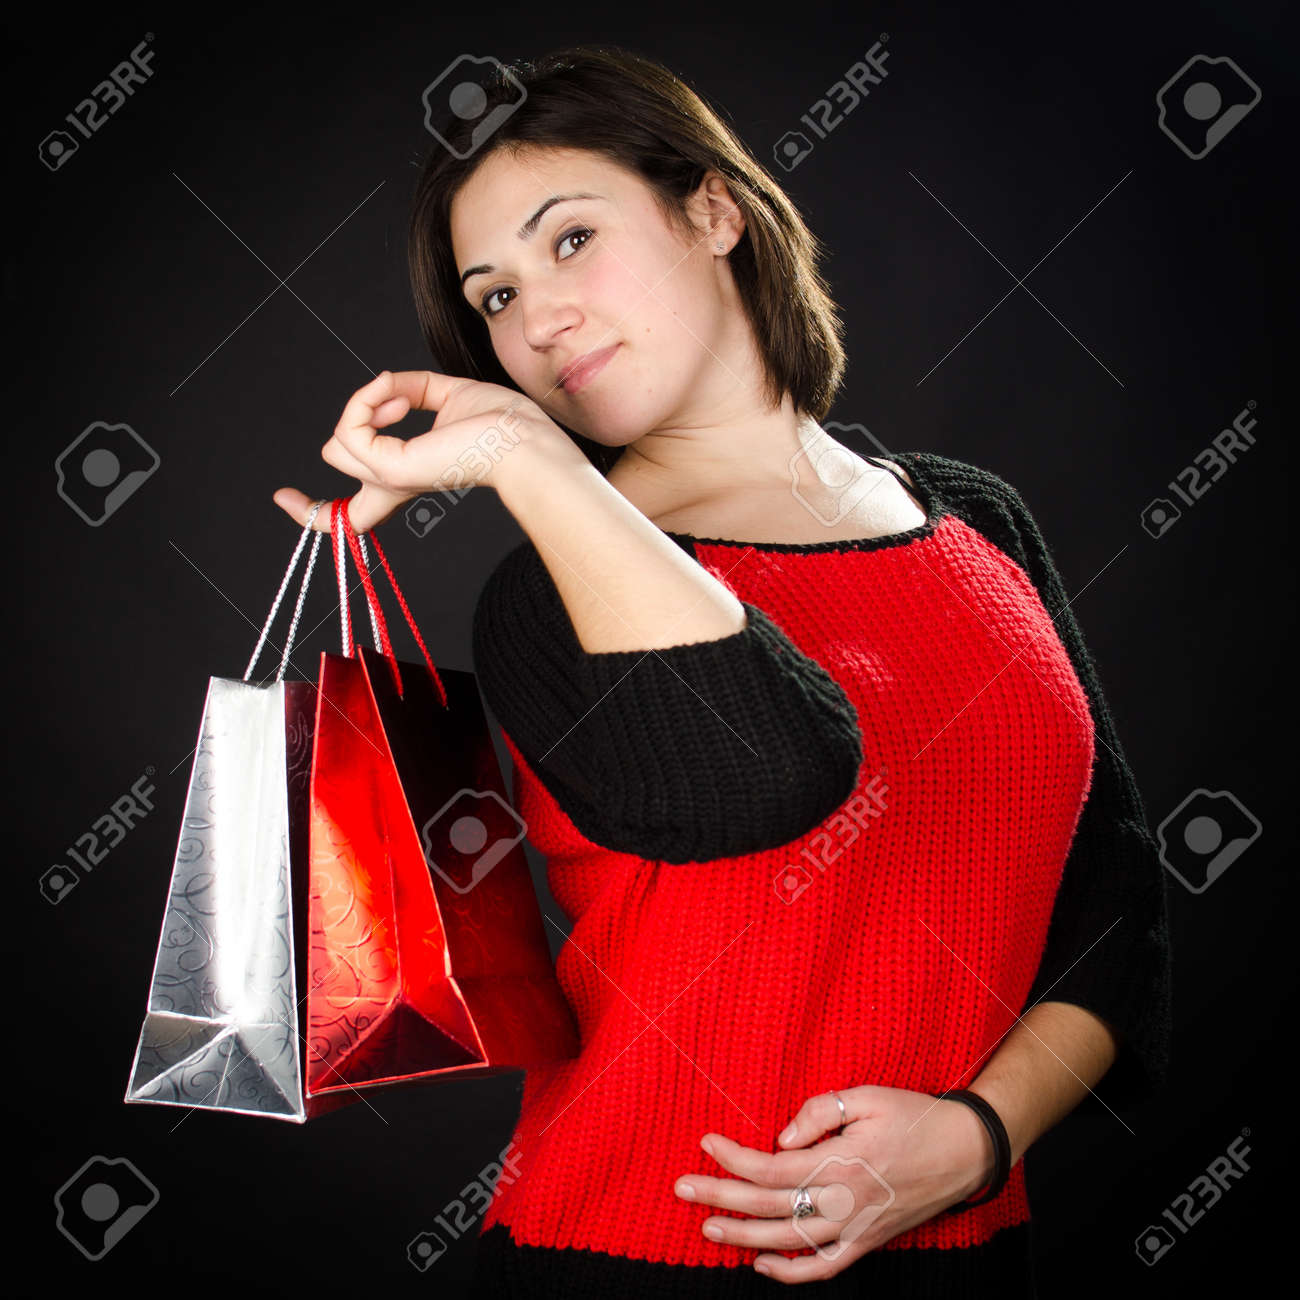 Portrait of young woman with gift bags against black background Stock Photo - 17866300